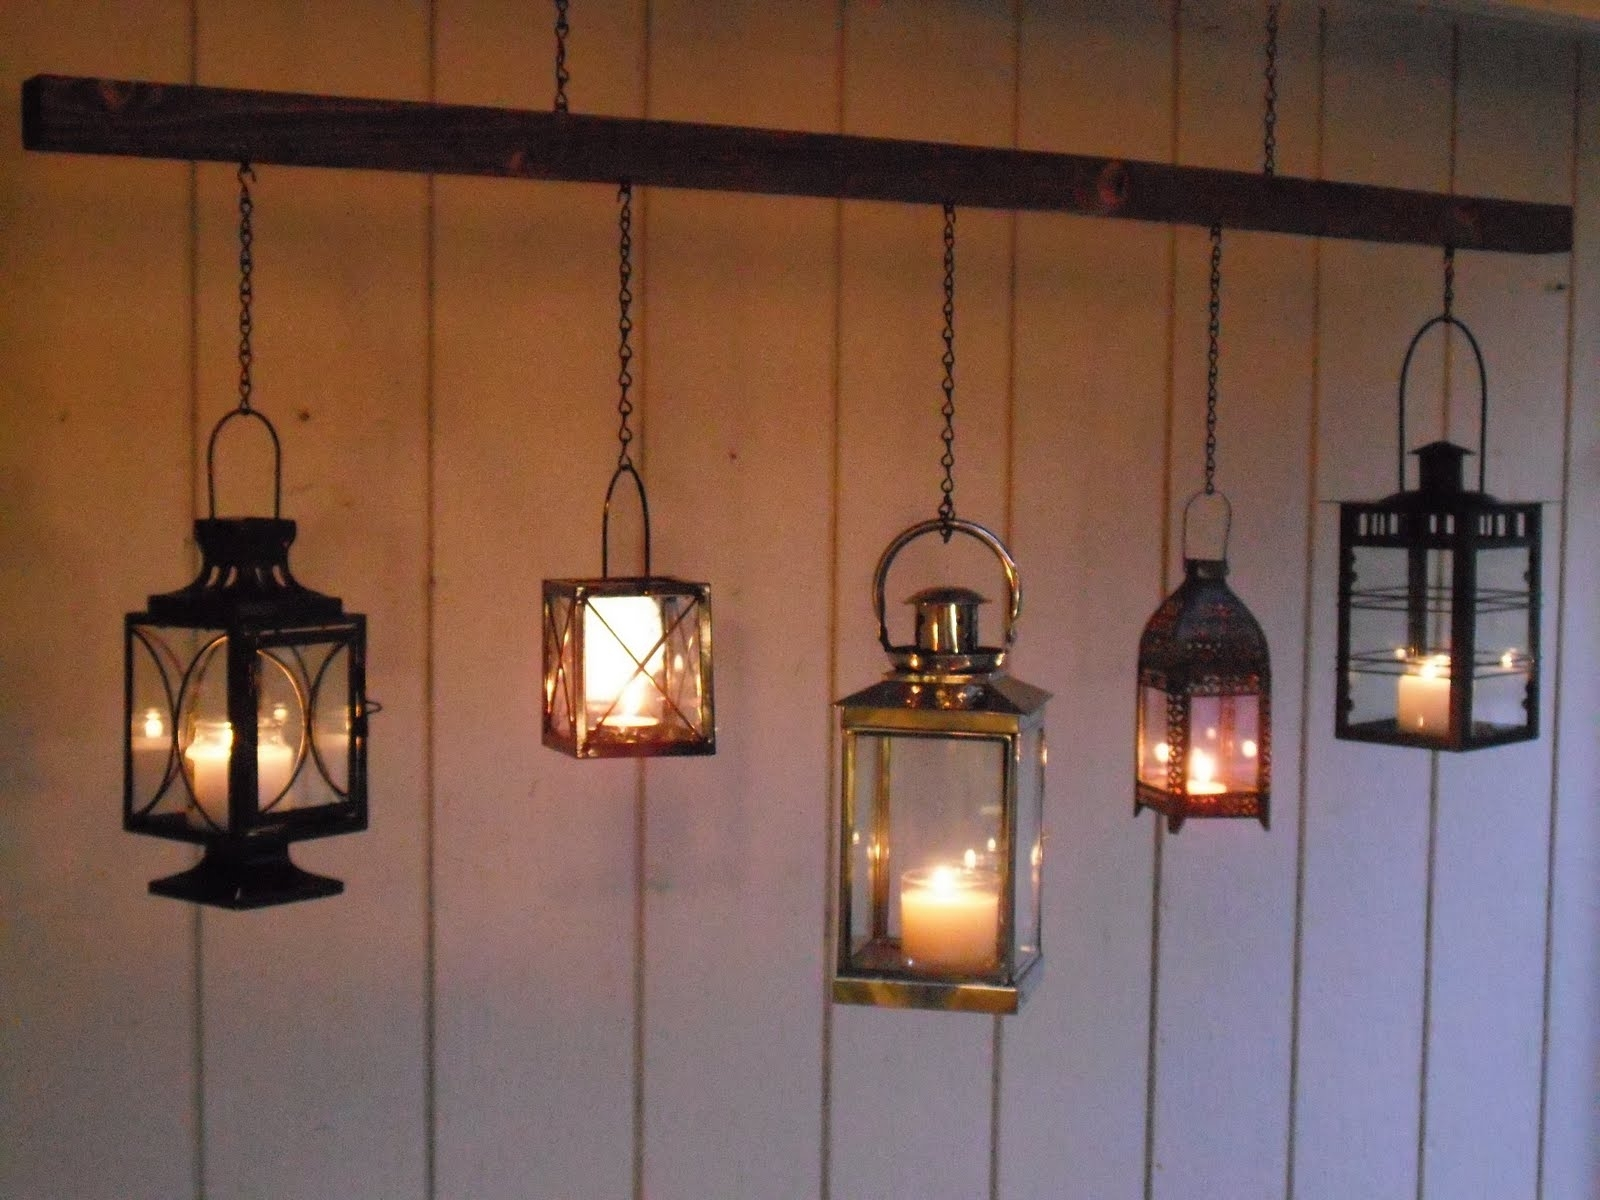 Wedding Decoration Hanging Candle Lanterns — Montserrat Home Design Pertaining To Outdoor Hanging Lanterns For Candles (#14 of 15)